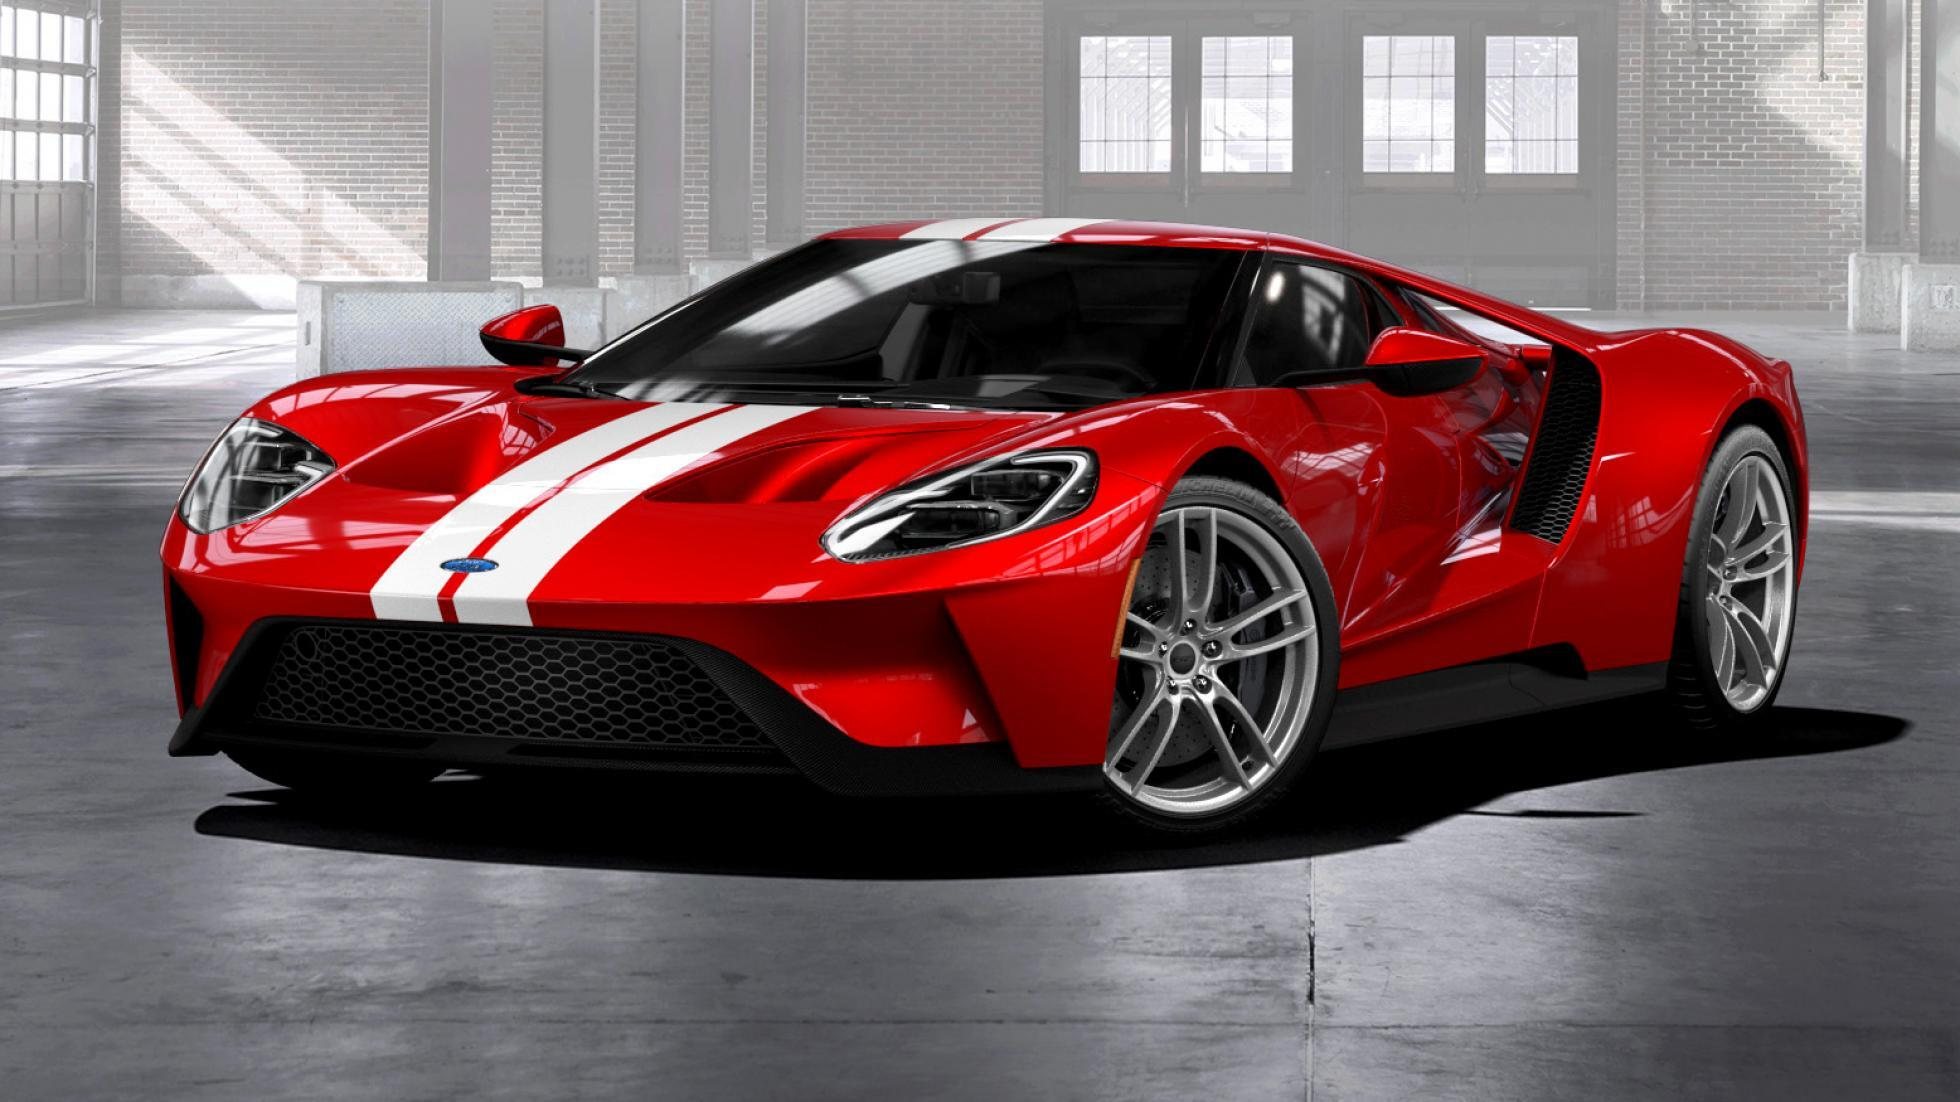 Ford Gt Production Extended By Two Years